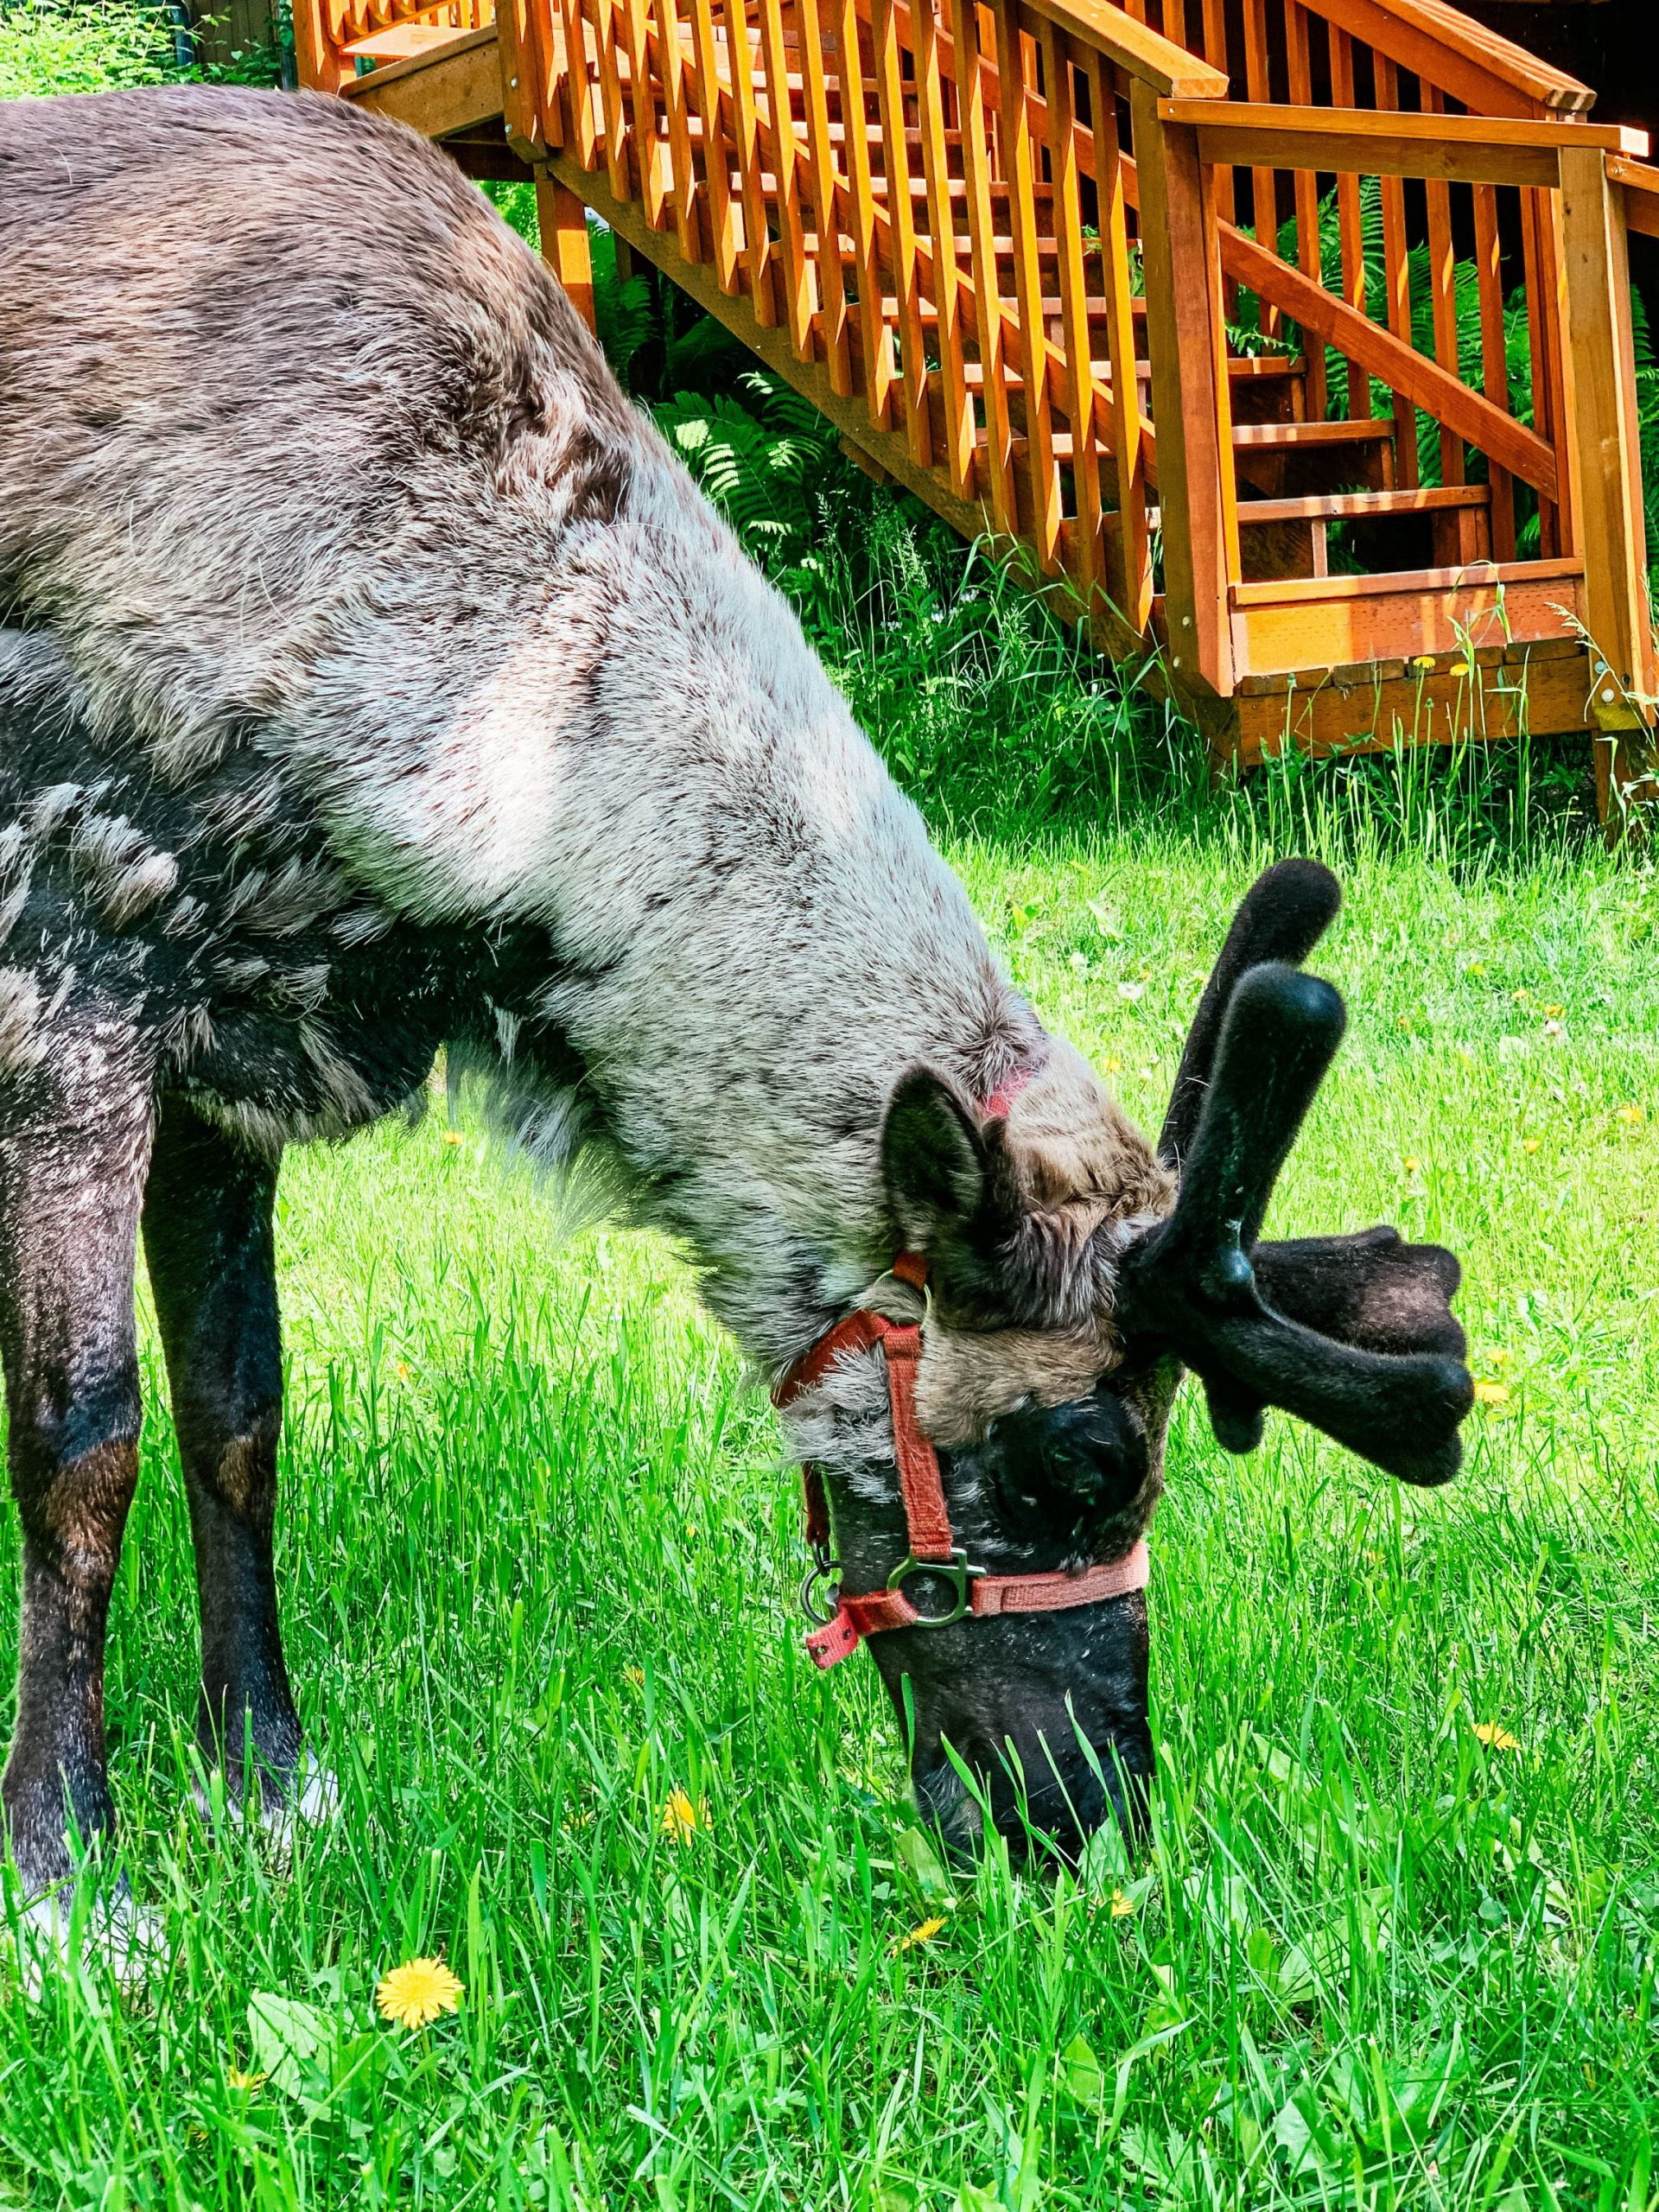 At Running Reindeer Ranch you can frolic with reindeer, even babies!